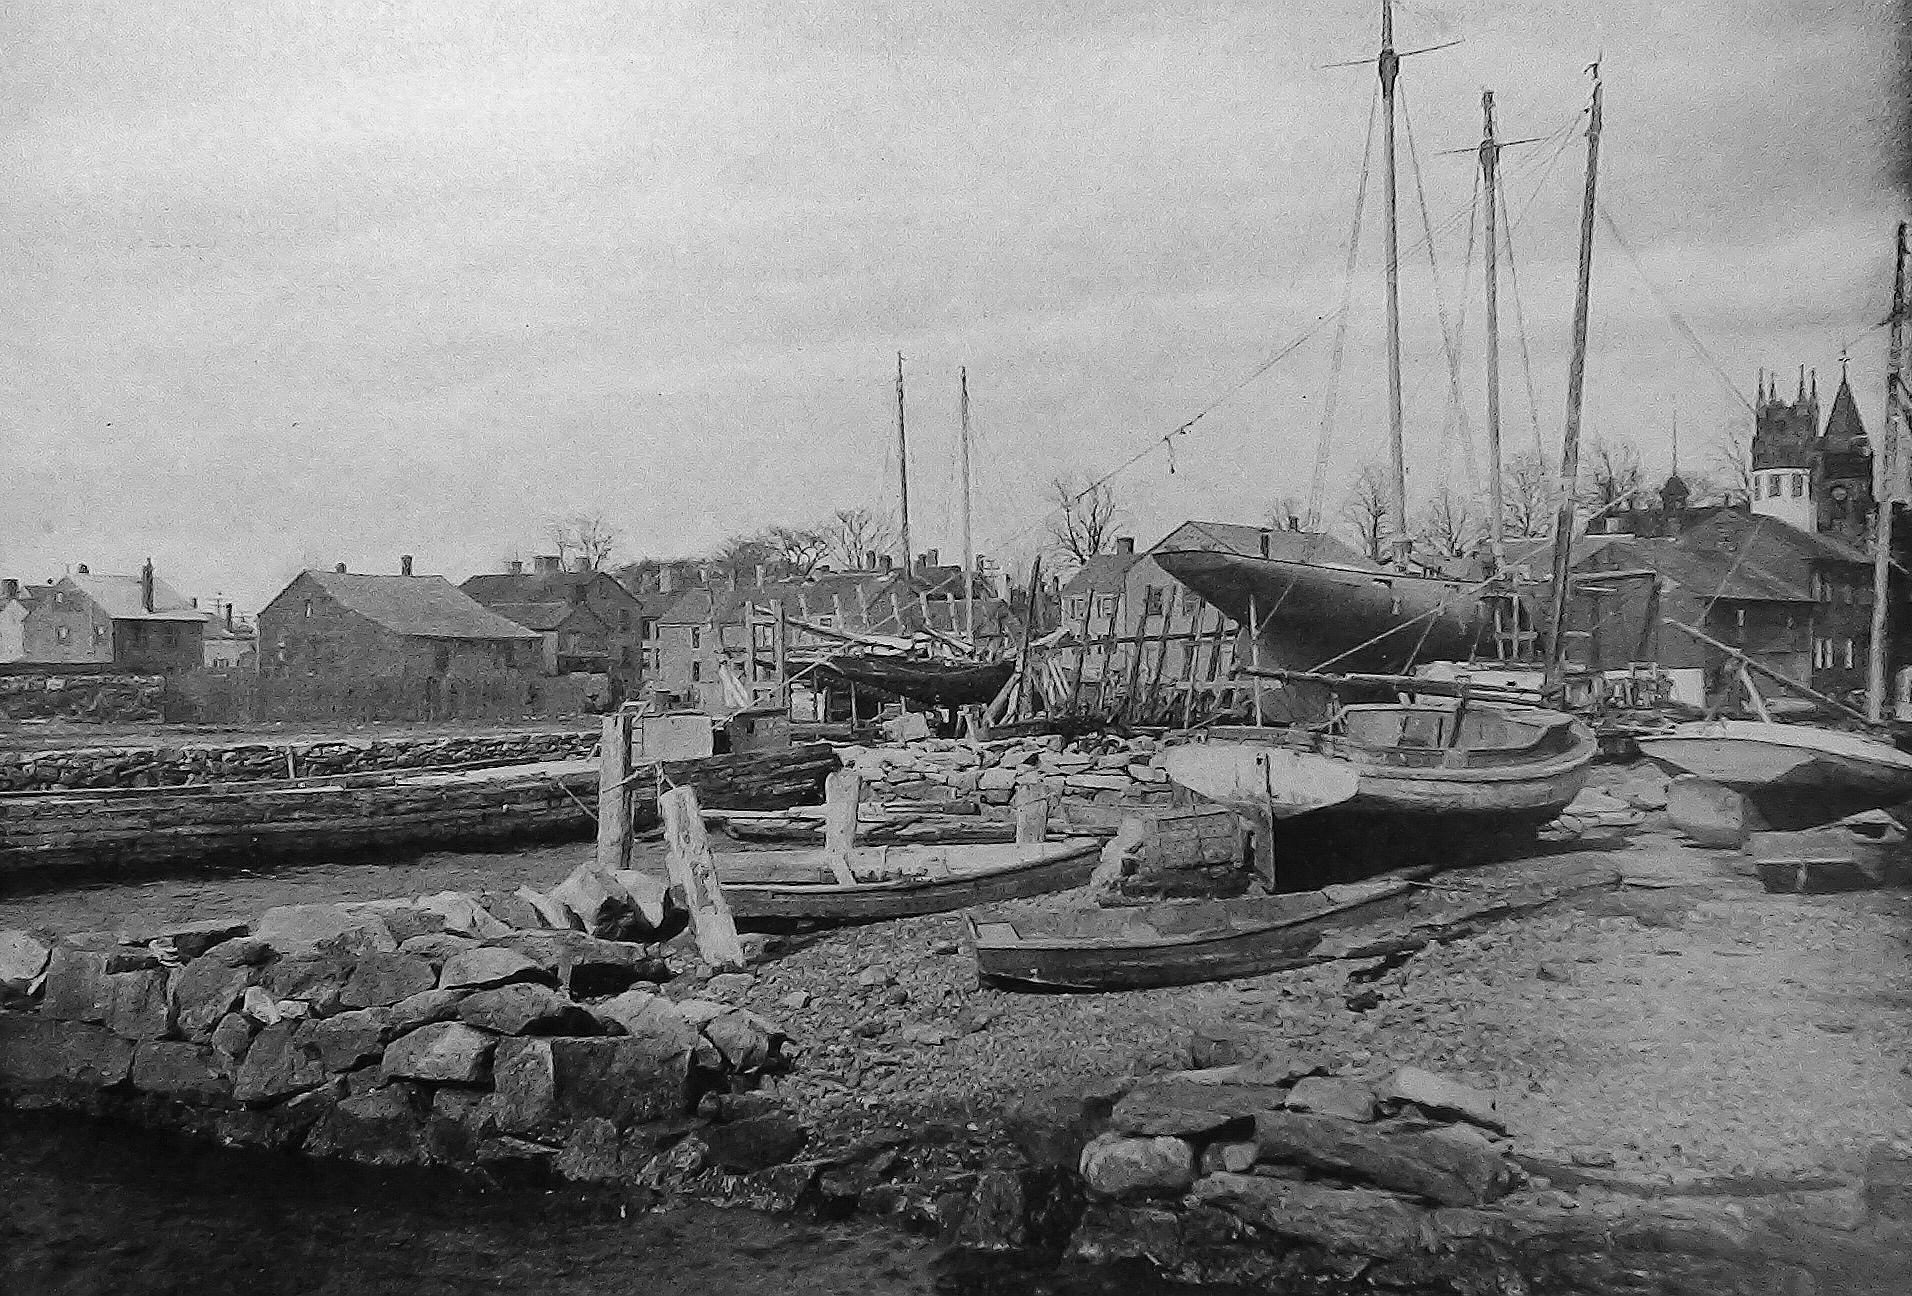 Kelly's Boat Yard Fairhaven, MA c1898